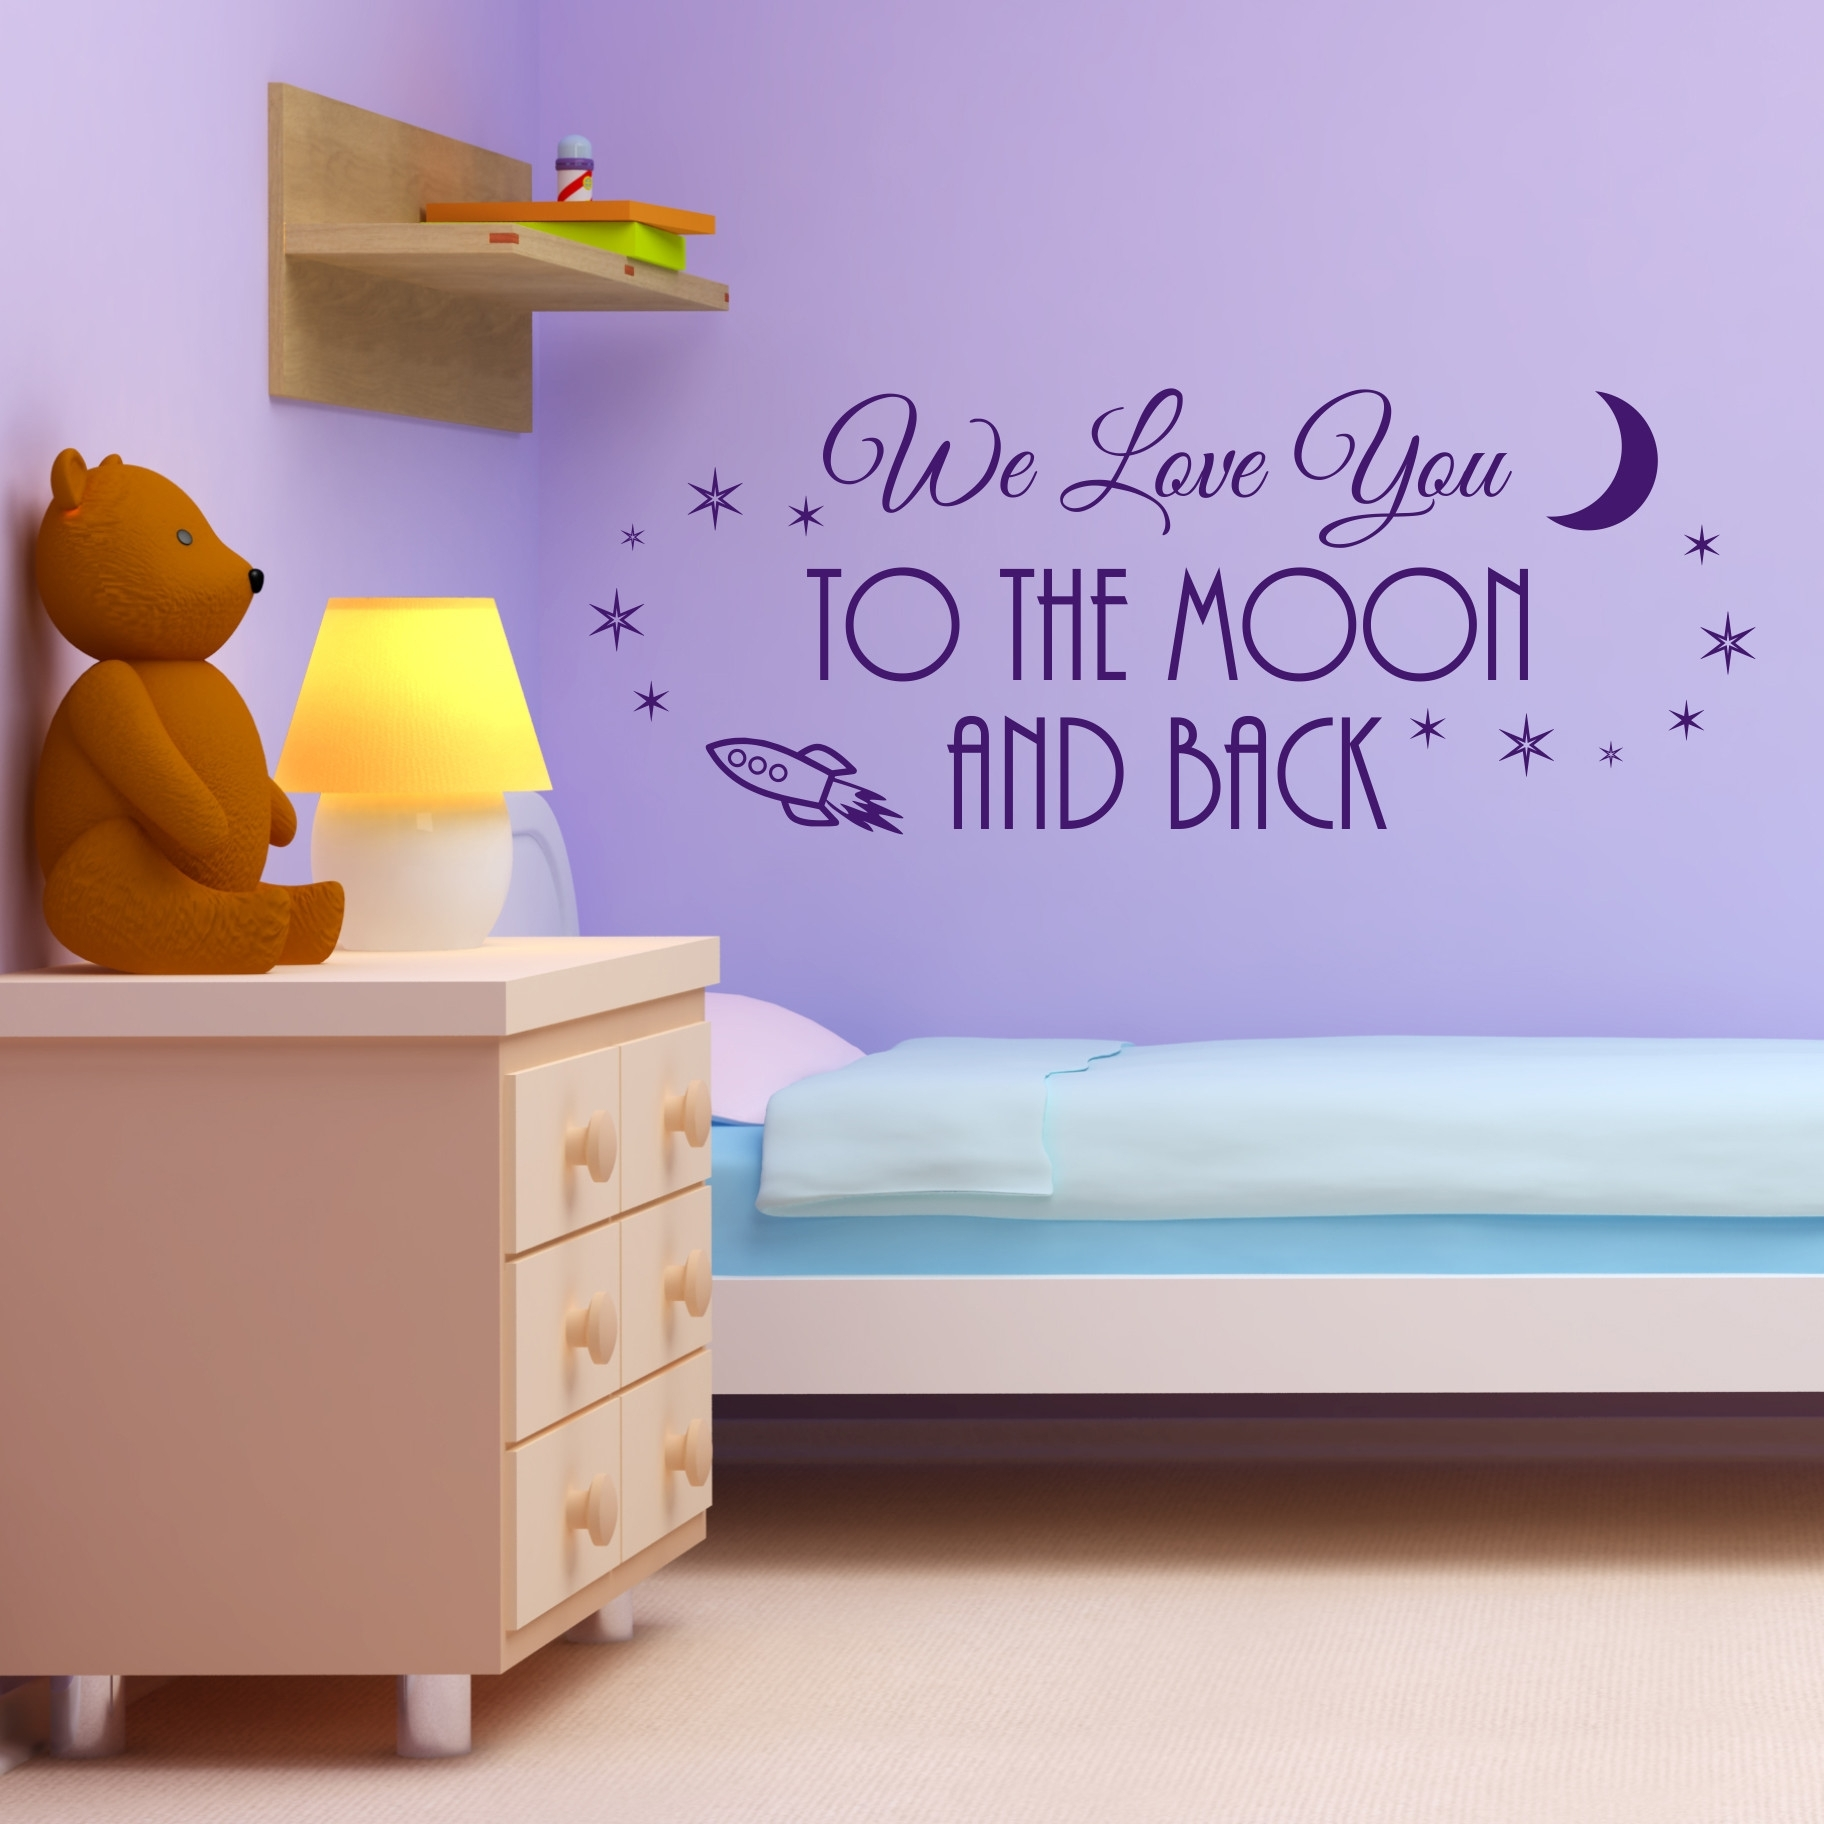 Nobby Design I Love You To The Moon And Back Wall Art – Ishlepark For Most Popular I Love You To The Moon And Back Wall Art (View 18 of 20)